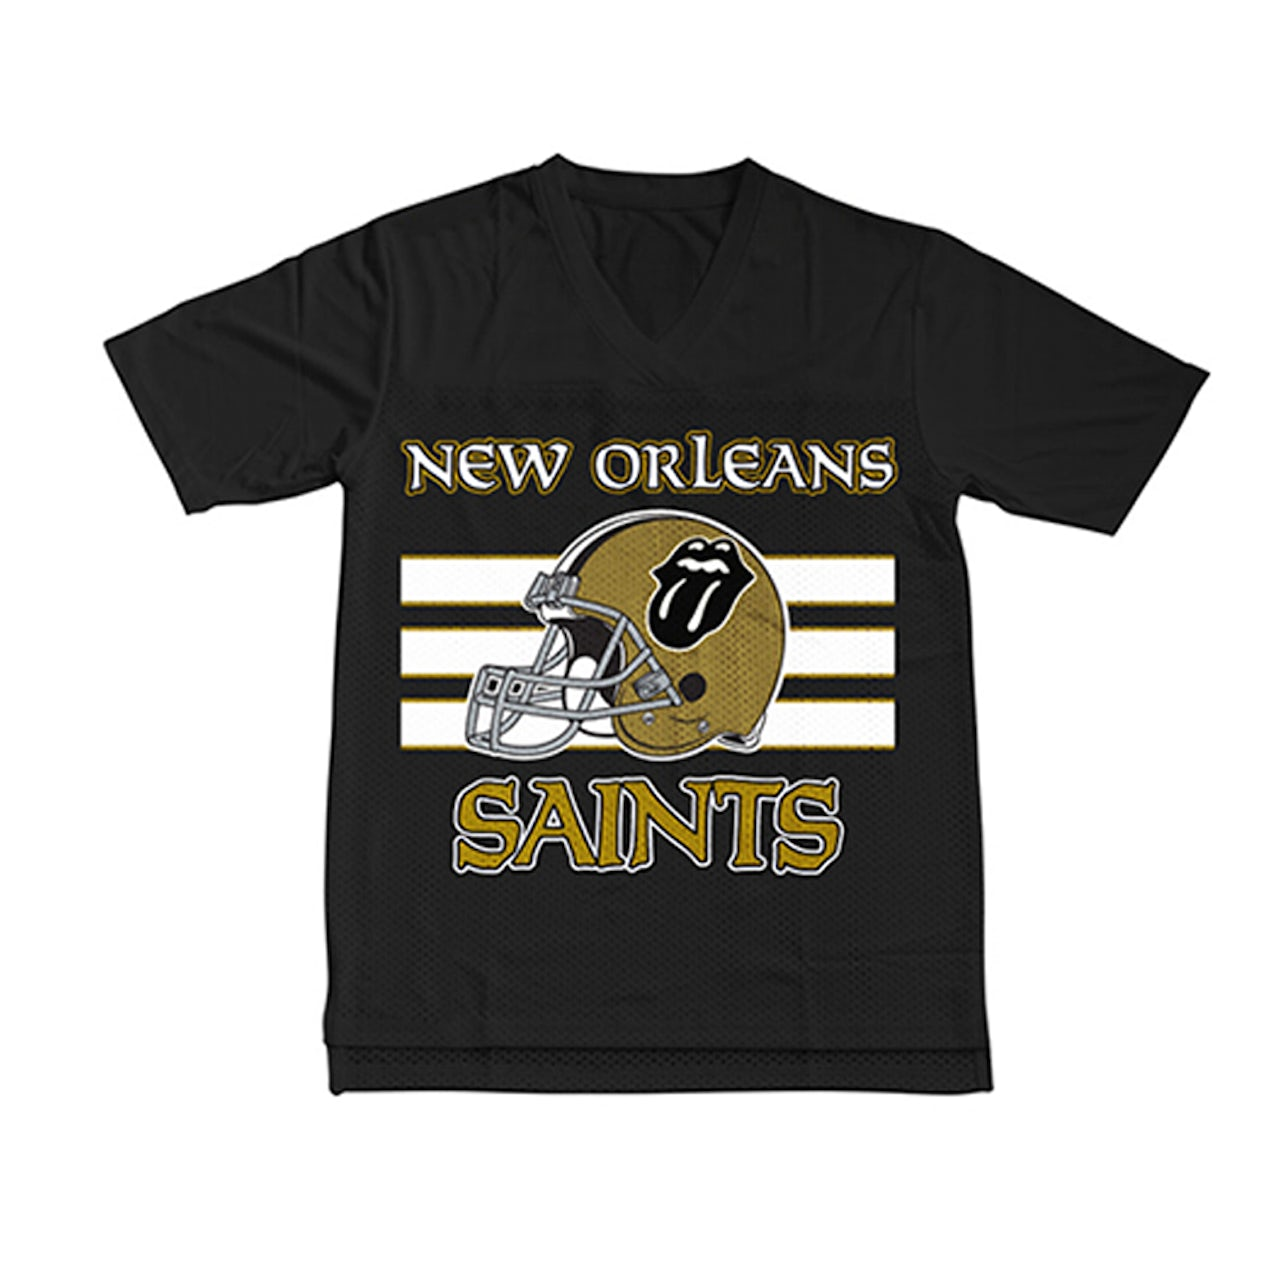 quality design 28e77 cdd6c The Rolling Stones New Orleans Saints Fashion Jersey